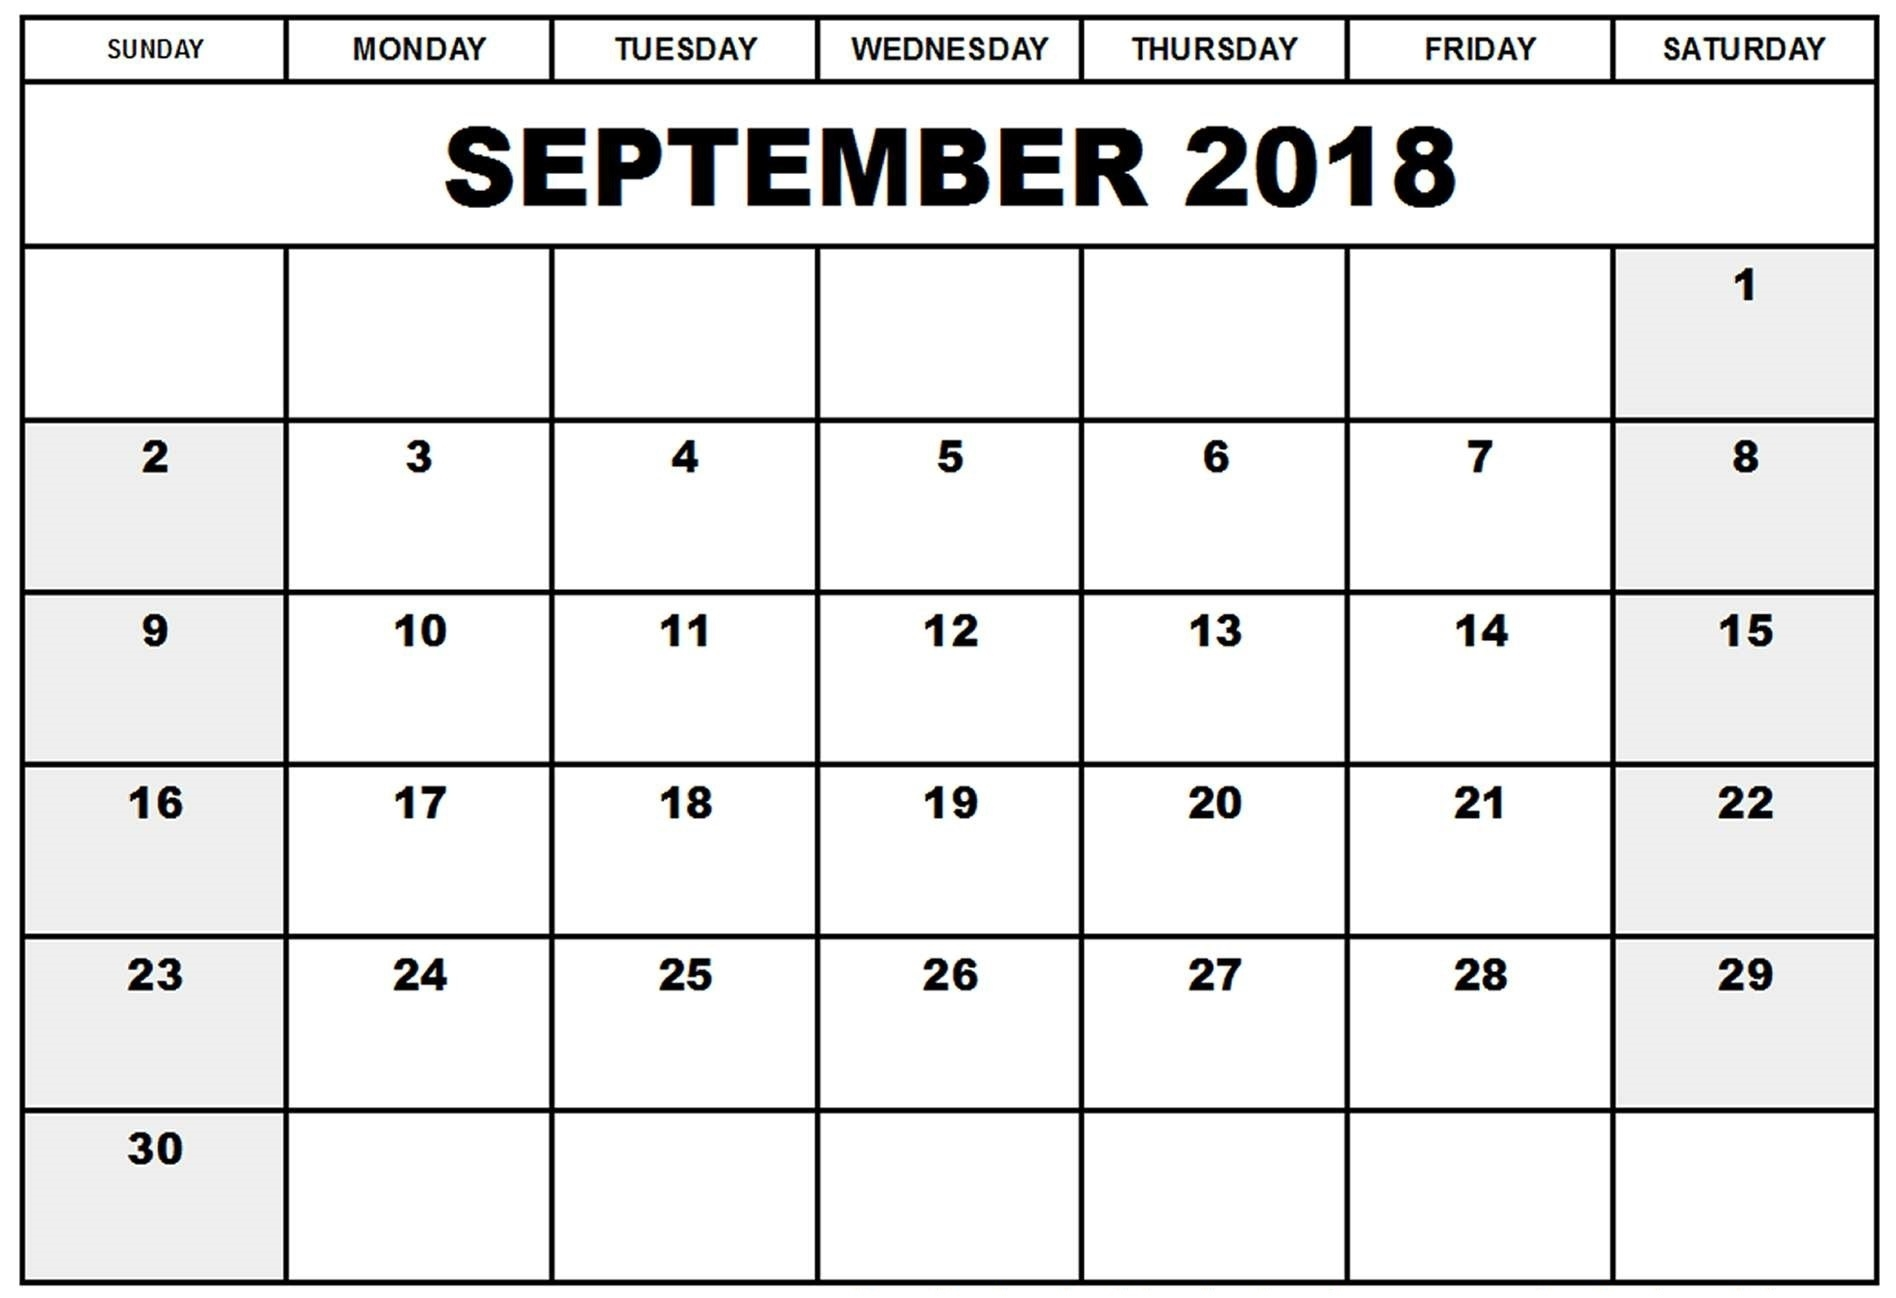 September Calendar 2018 Printable – Printable 2018 Calendar  August And Septembercalendar Free Printables